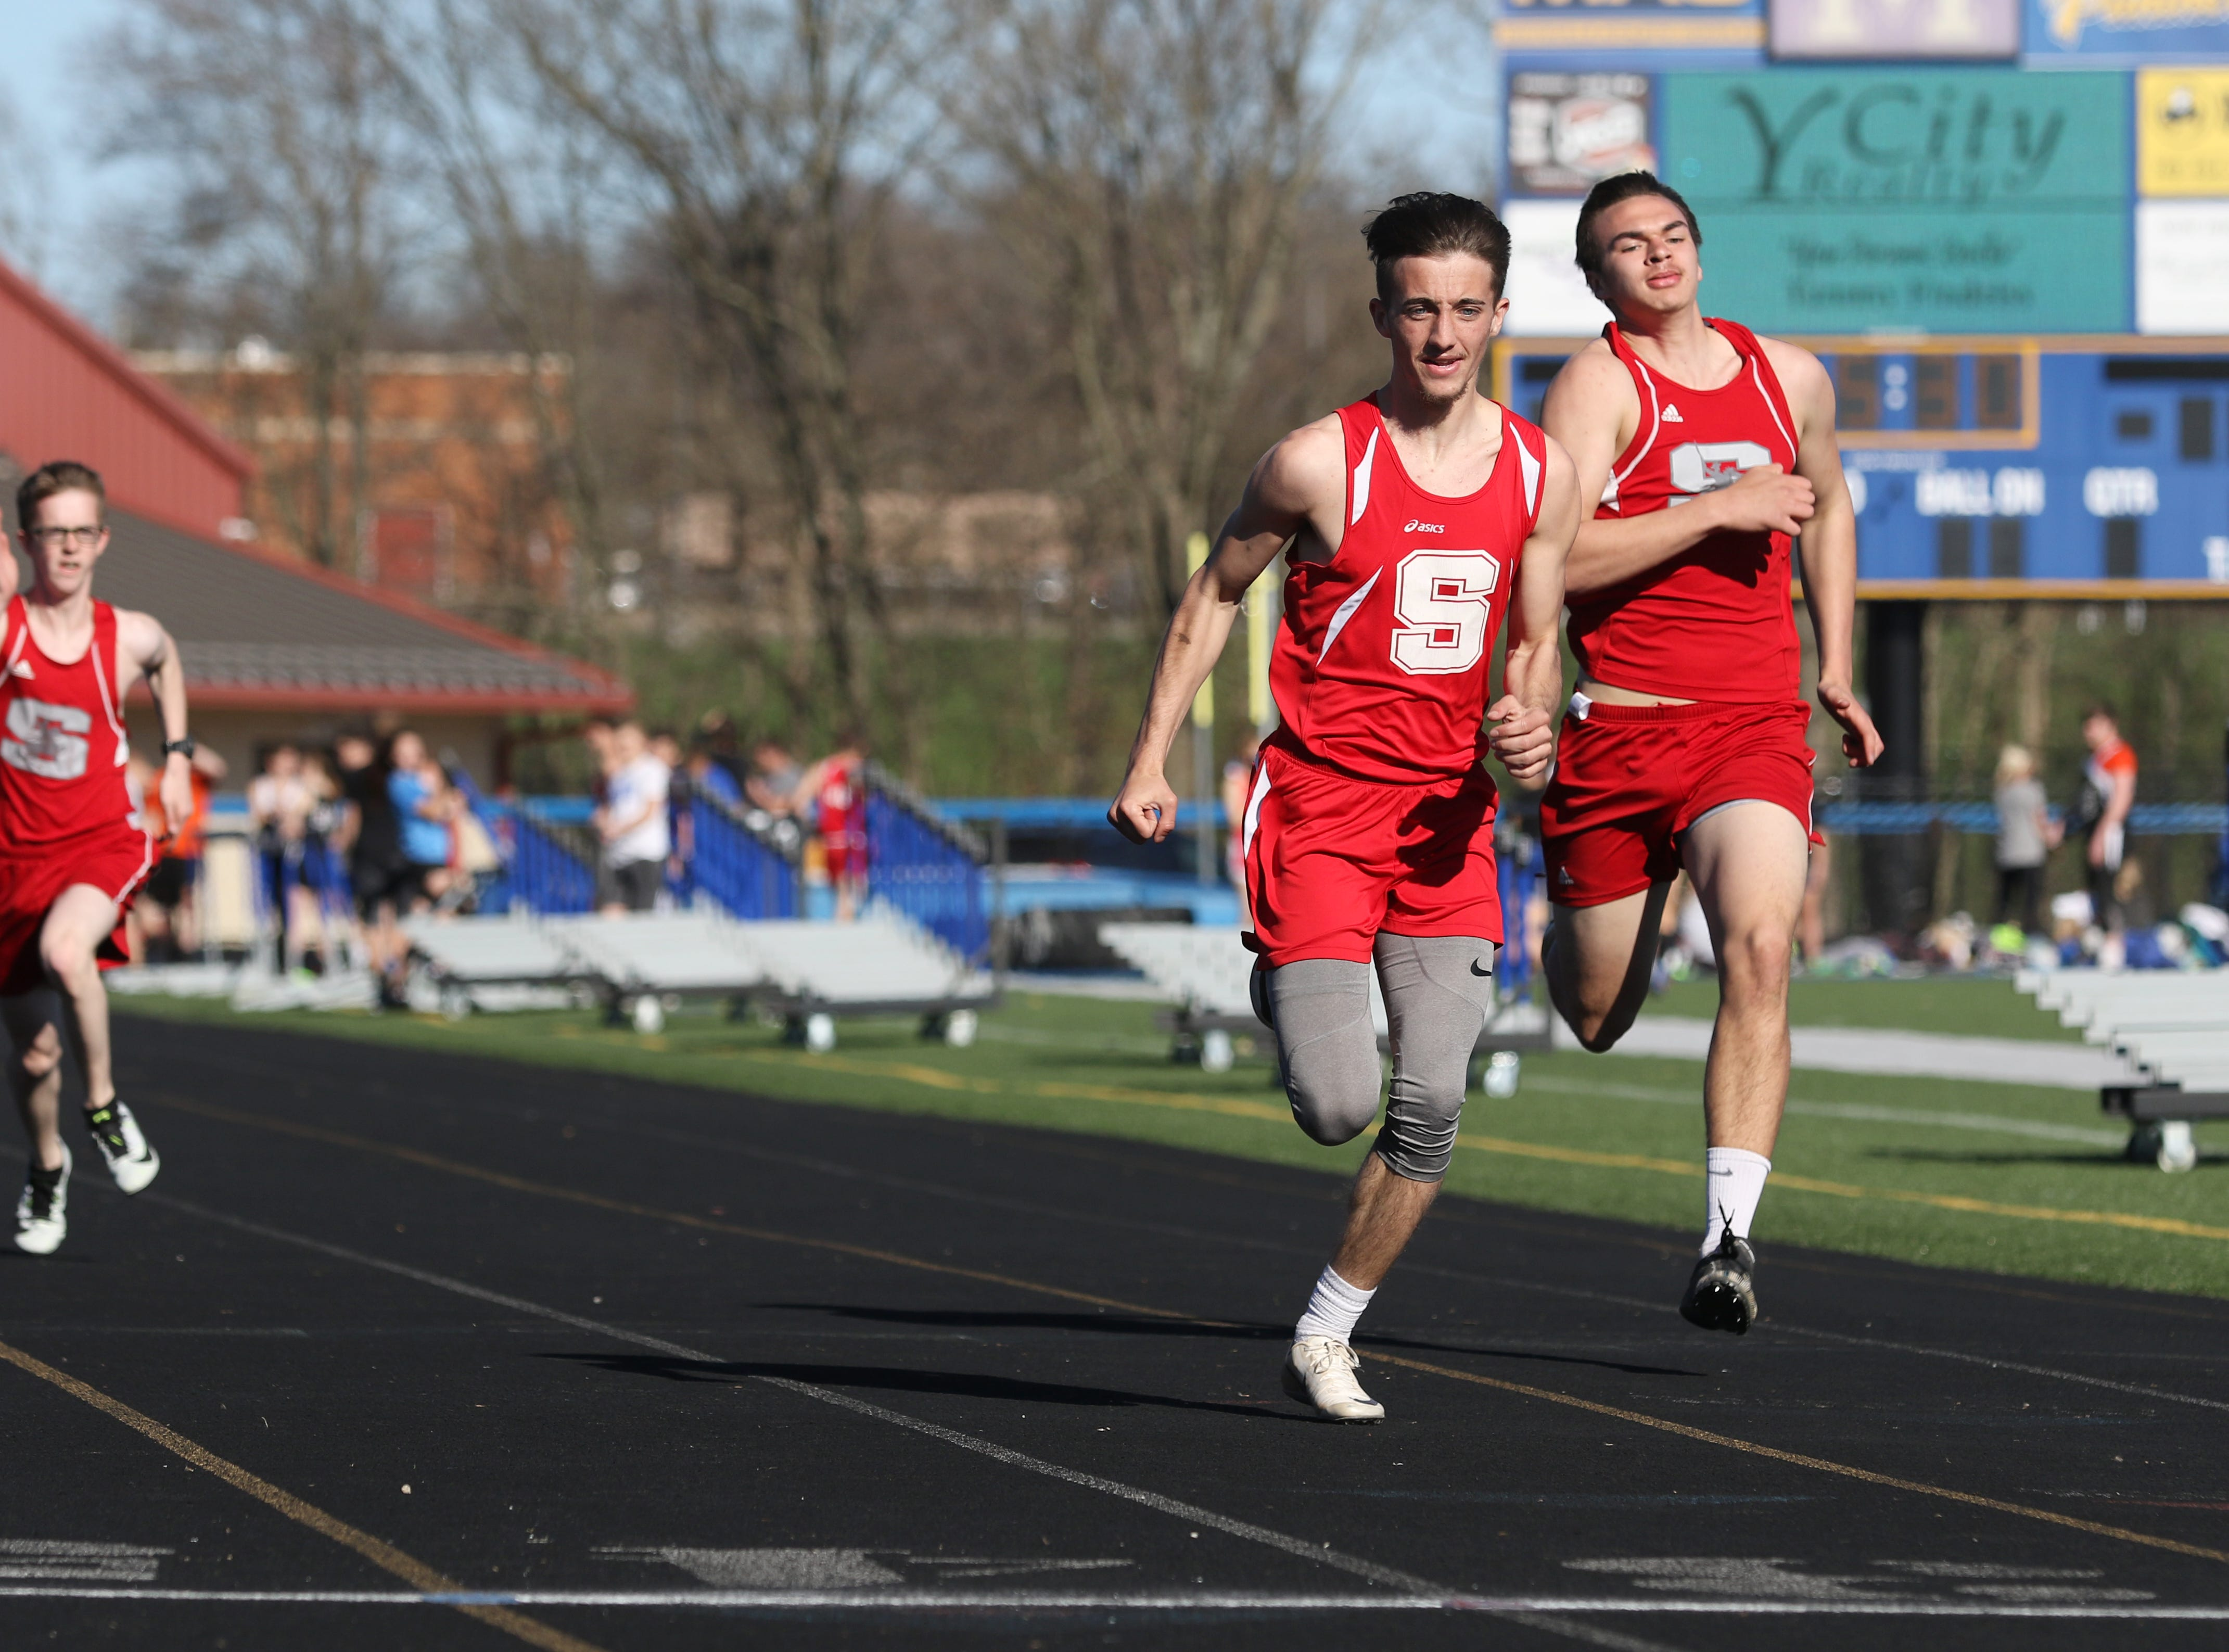 Sheridan's Tayden Sabo wins his heat of the 100 meter dash during Tuesday's tri-meet between Sheridan, New Lexington and host Maysville.